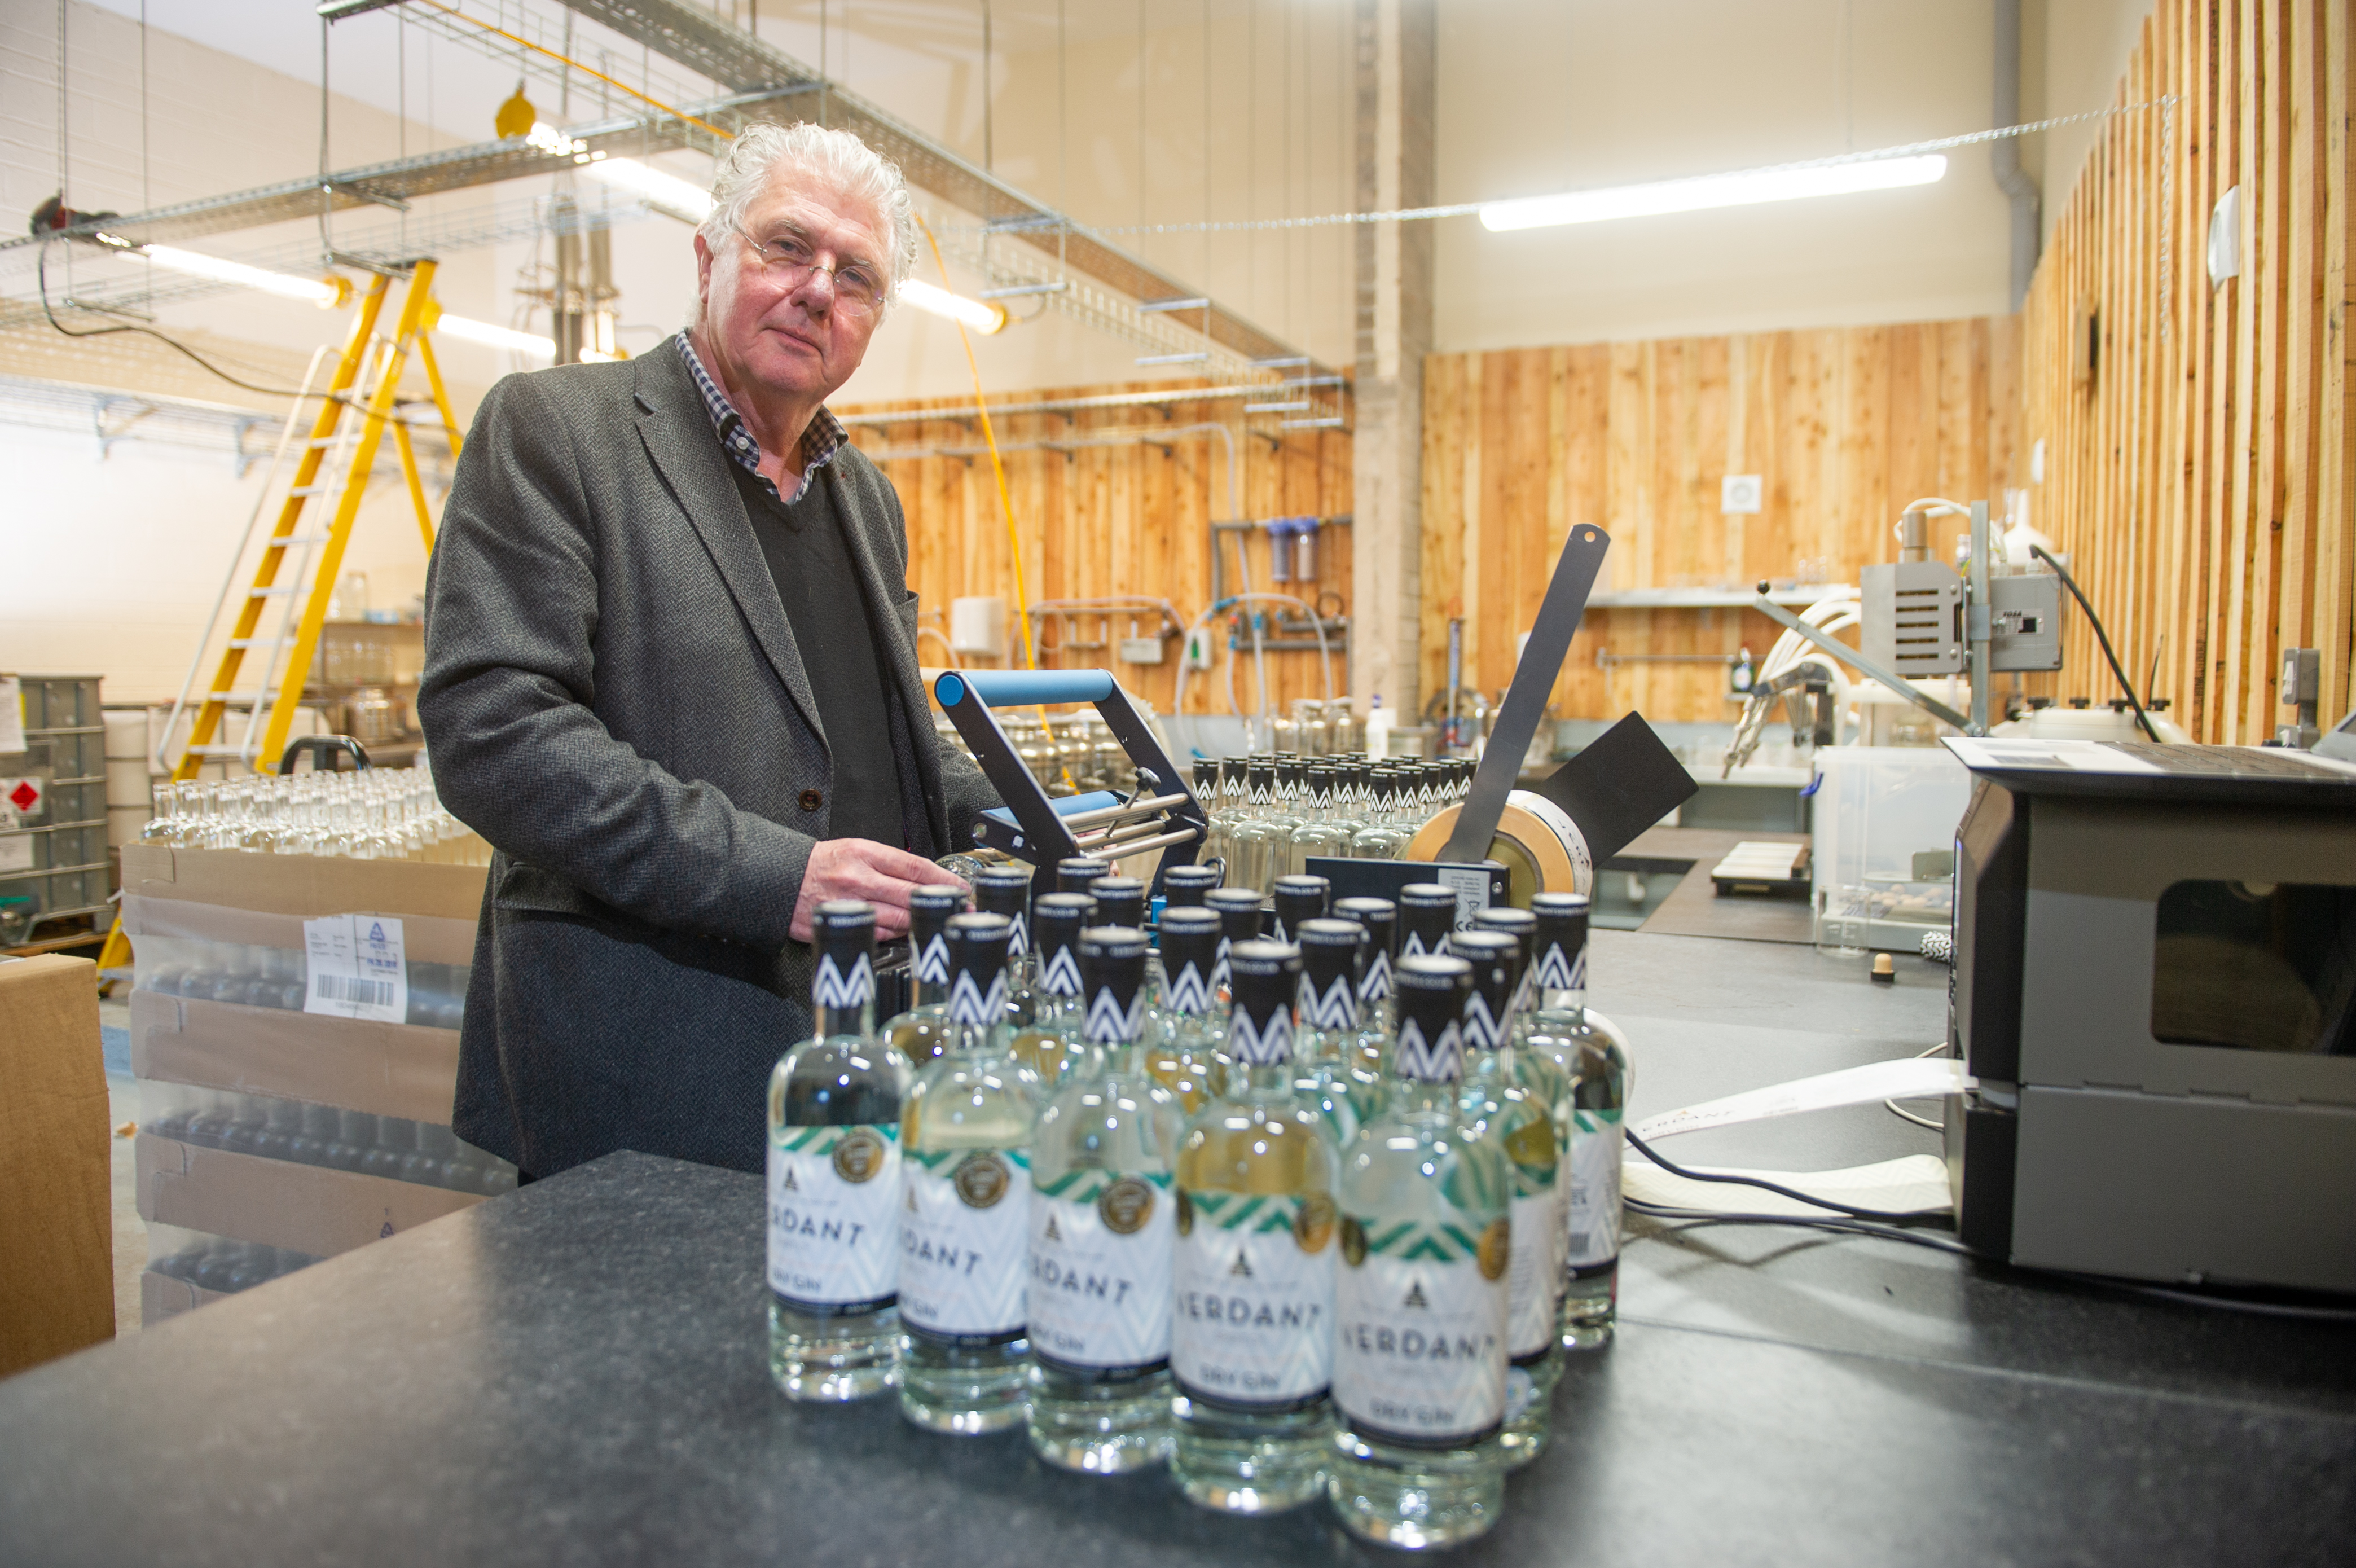 Founder and managing director of Verdant Spirits, Andrew Mackenzie has started a crowdfunding campaign as he prepares to launch a gin school and visitor centre. Picture: Kim Cessford.